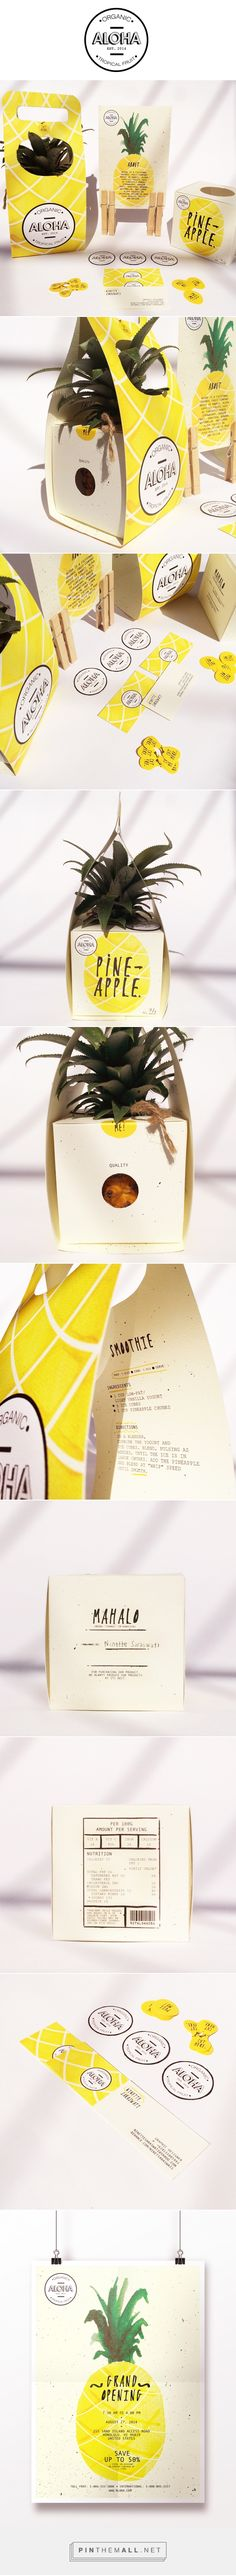 ALOHA Branding and Packaging, Ninette Saraswati. Packaging Box Design, Fruit Packaging, Cool Packaging, Packaging Design Inspiration, Brand Packaging, Product Packaging, Packaging Boxes, Package Design, Design Ideas